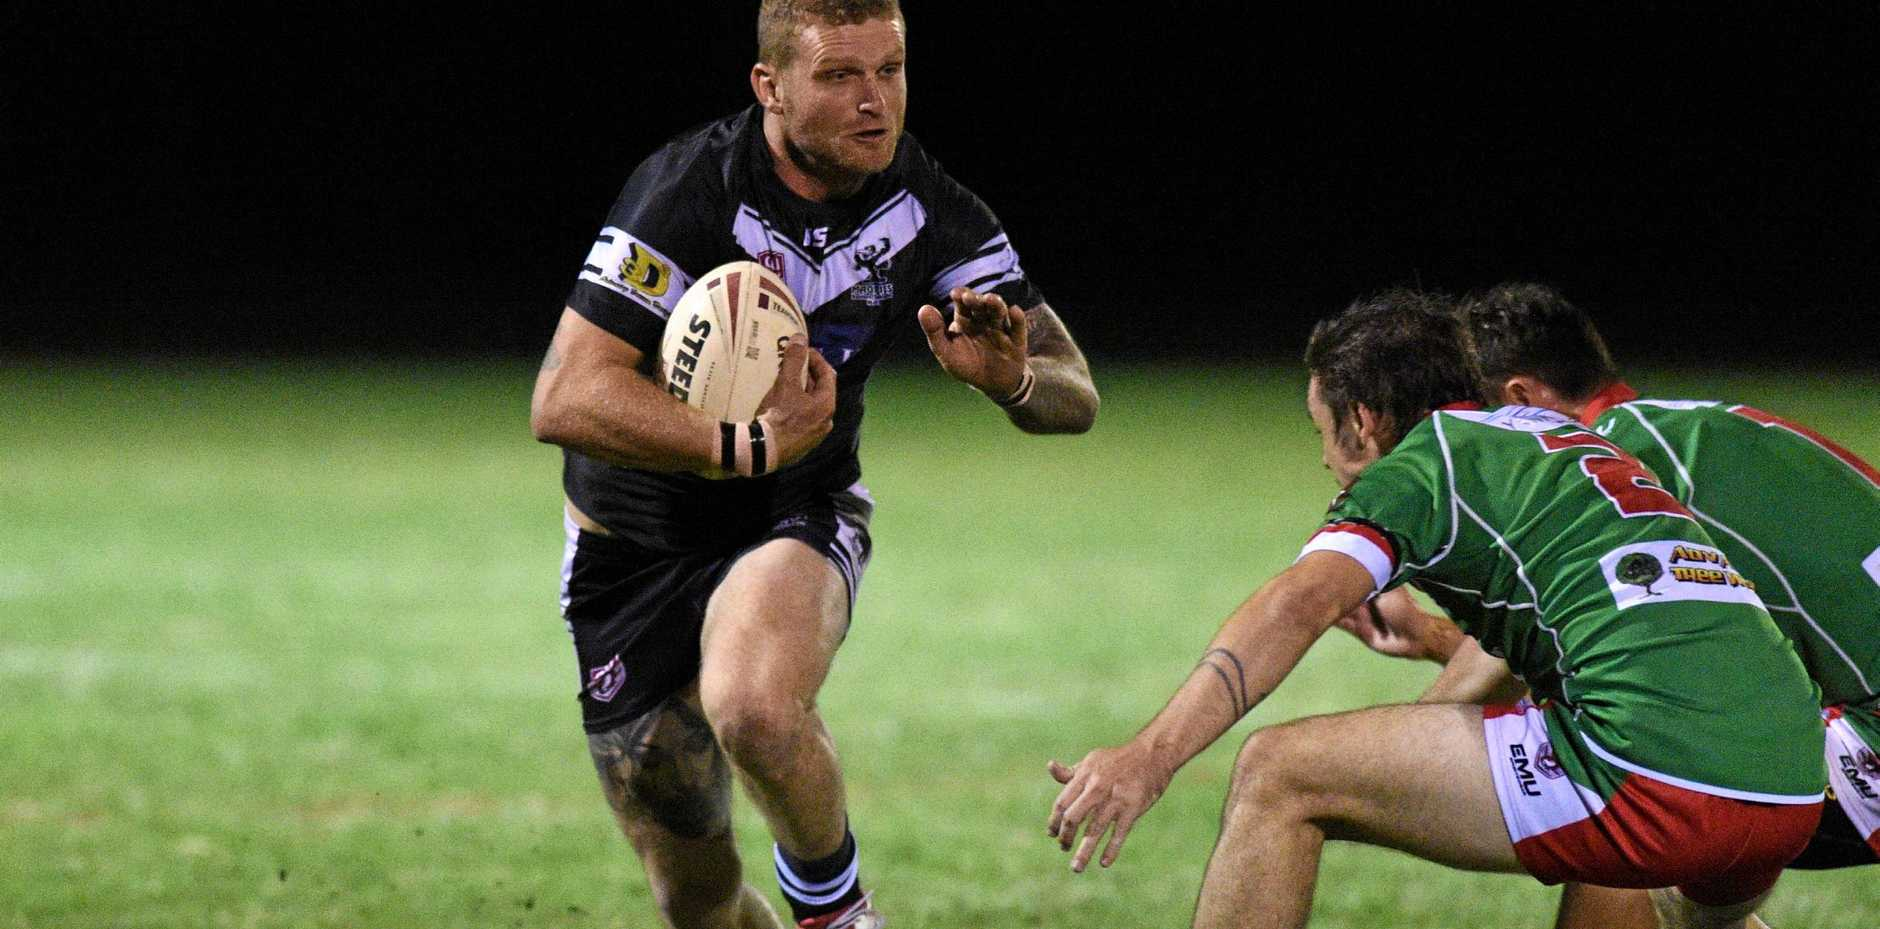 IN ACTION: Easts' Craig Bek attempts to fend off the Hervey Bay defence earlier this season.